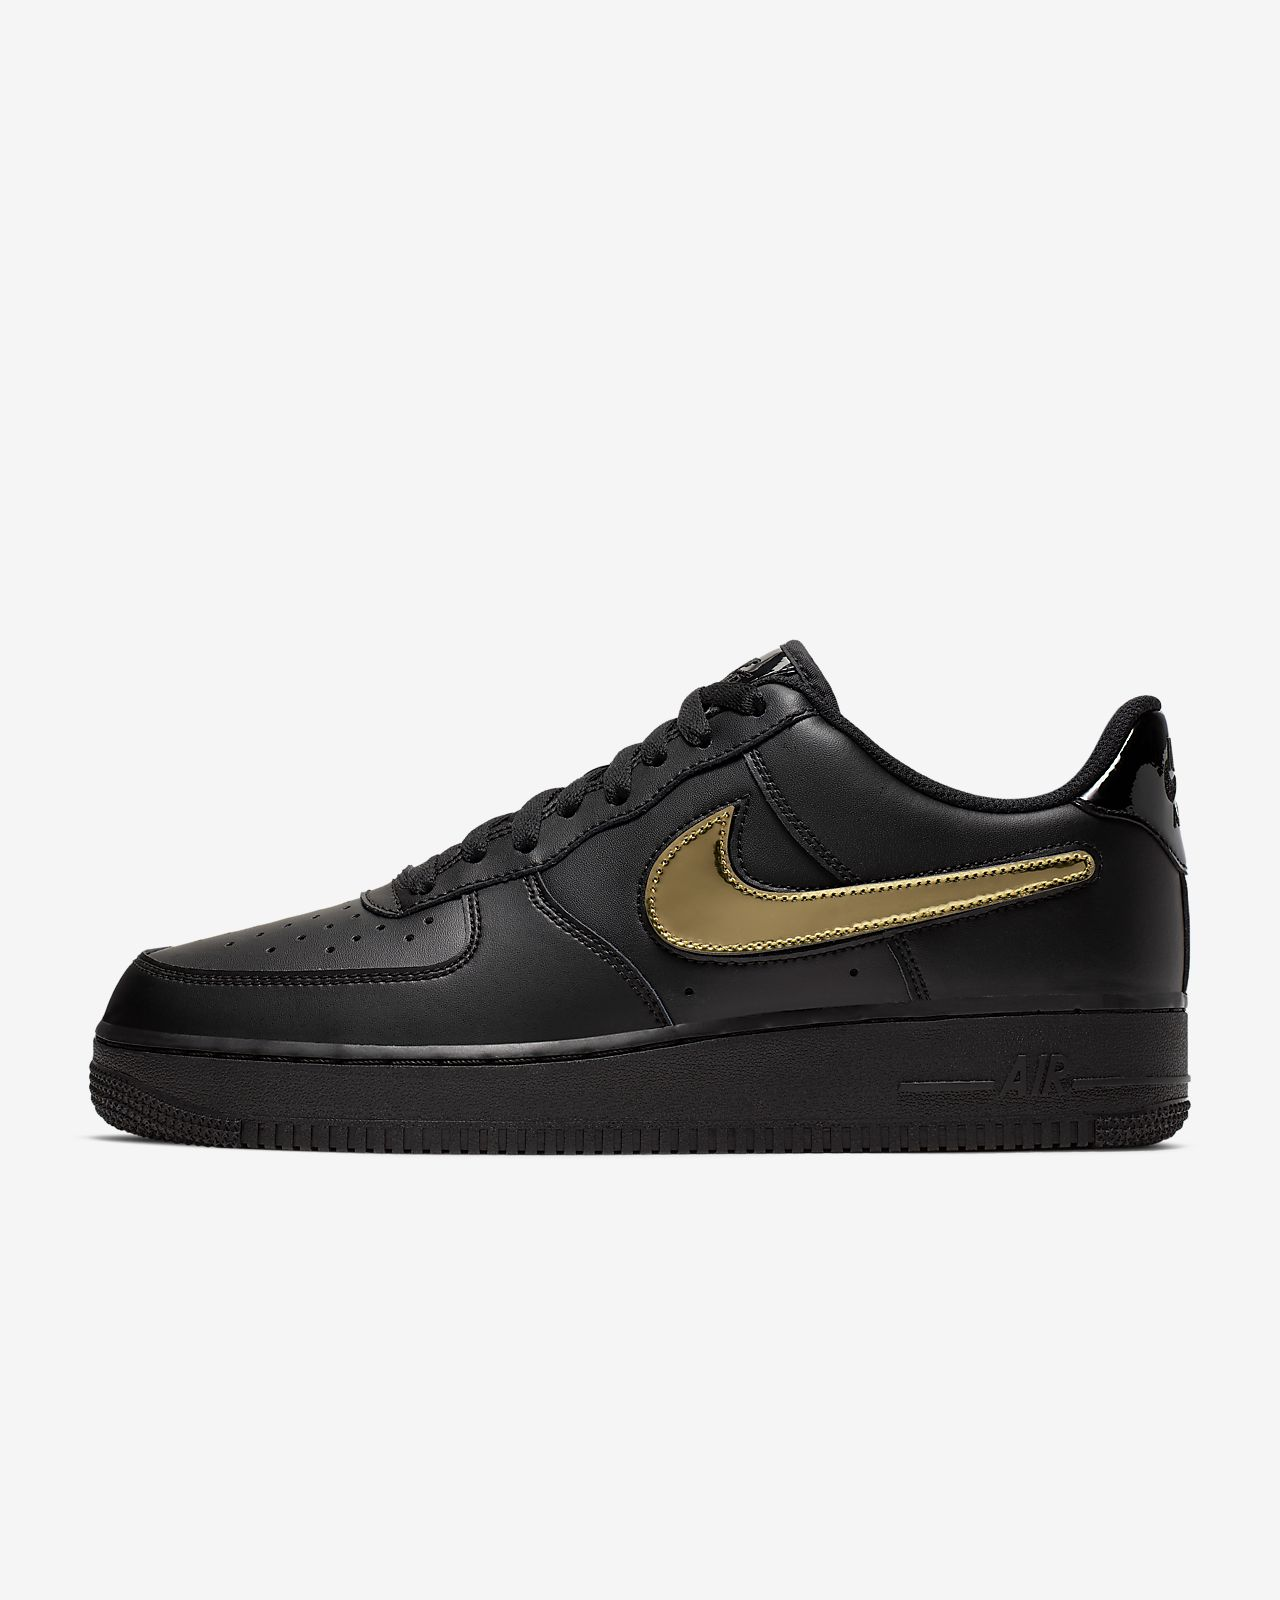 Nike Air Force 1 '07 Lv8 3, Chaussures de Basketball Homme